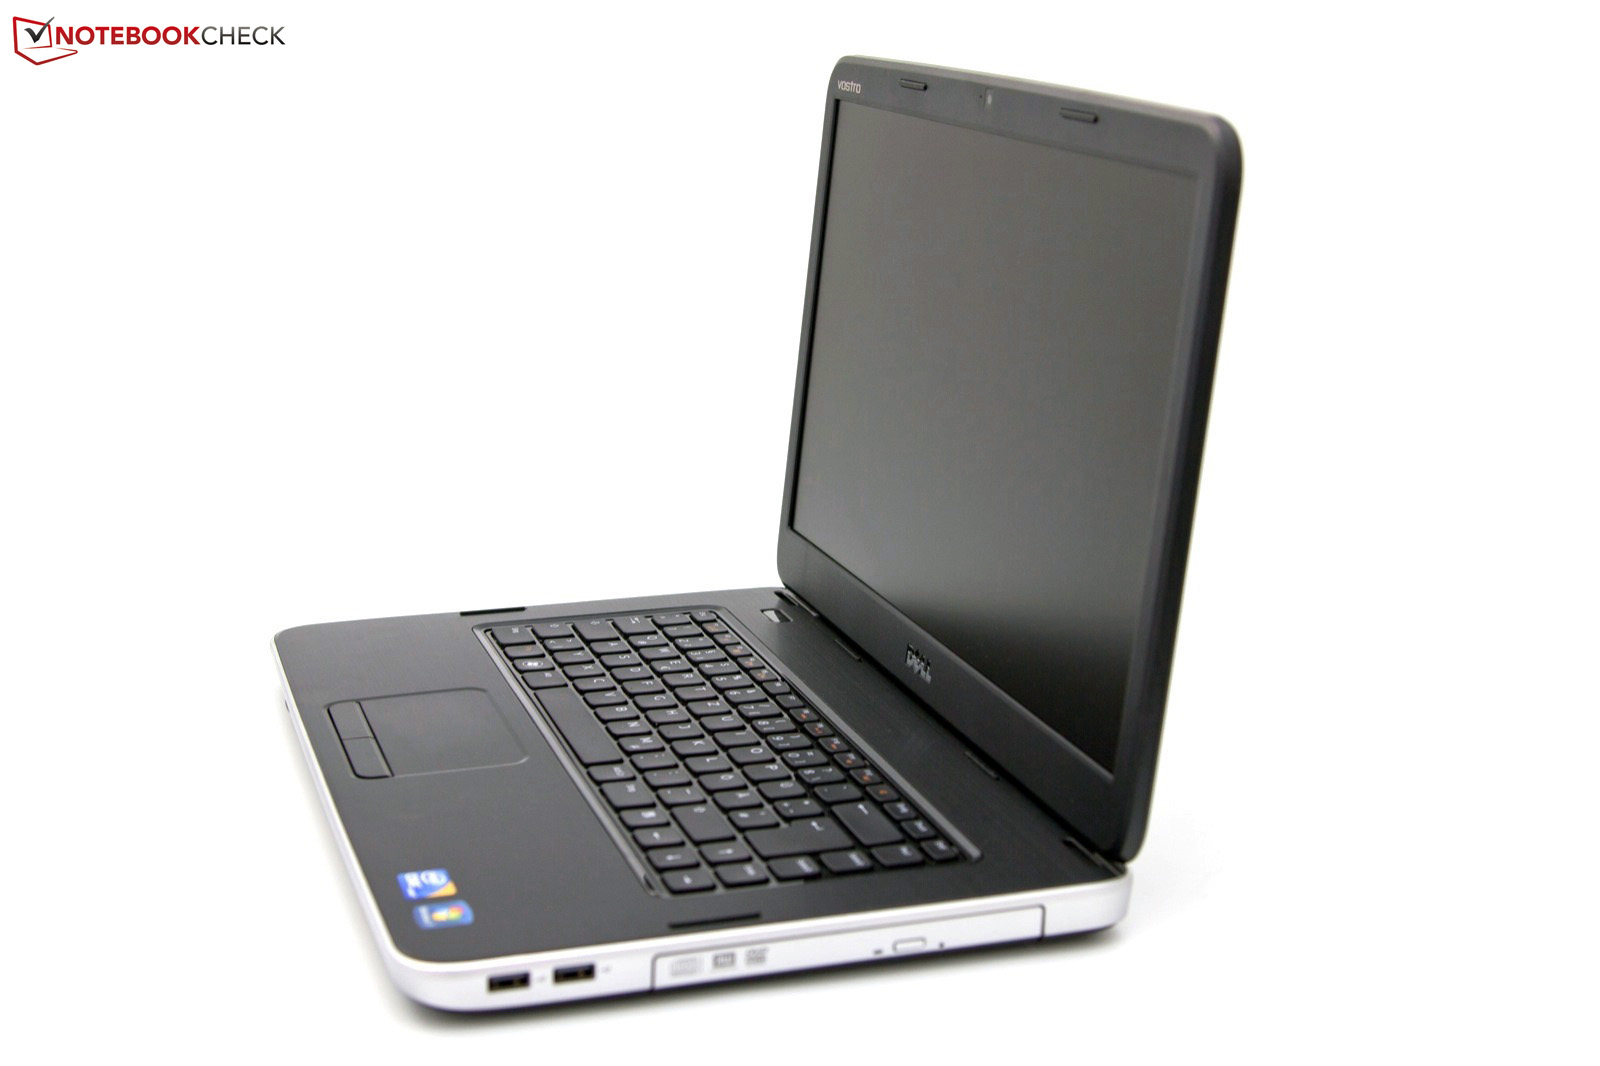 Dell Vostro 1440 Notebook Alps Touchpad Driver for Windows Mac